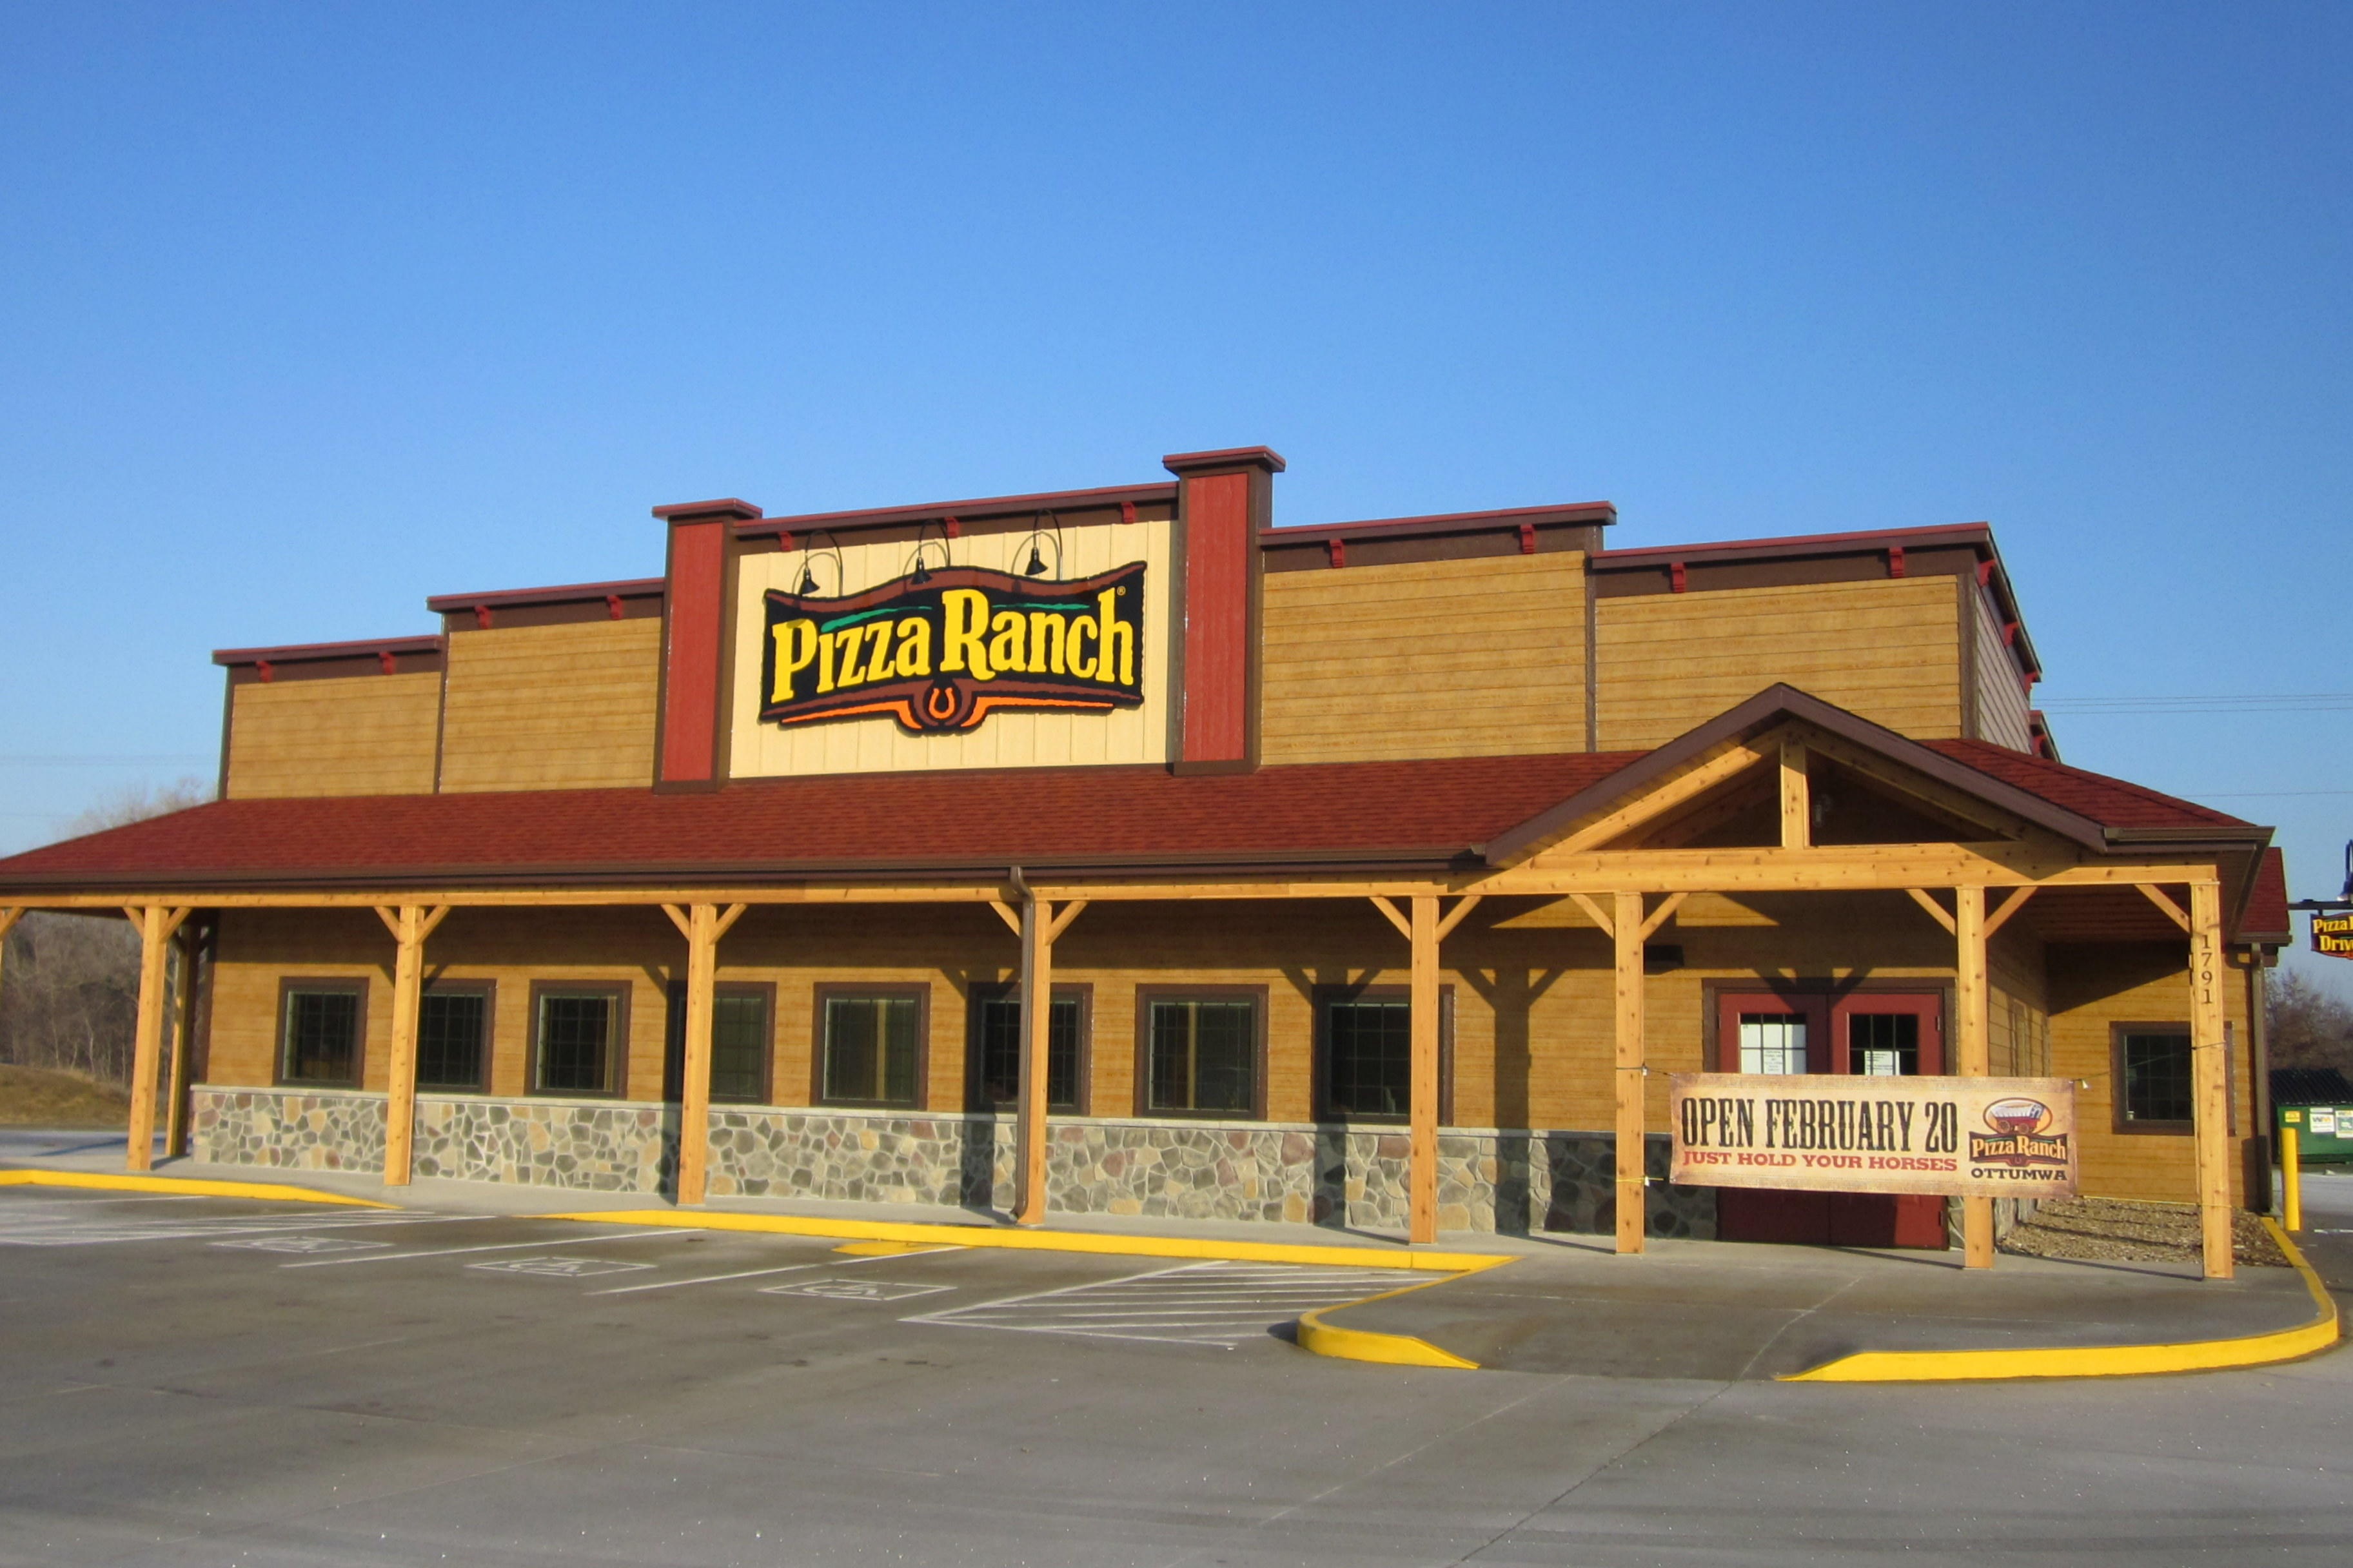 From humble beginnings in a small Iowa town to plus restaurant locations across the Midwest, Pizza Ranch has grown with loyal customers and hard-working franchise owners. Striving to uphold the company's Mission and Vision, each Pizza Ranch location is a part of our lore and can trace its roots back to the very beginning of the story.